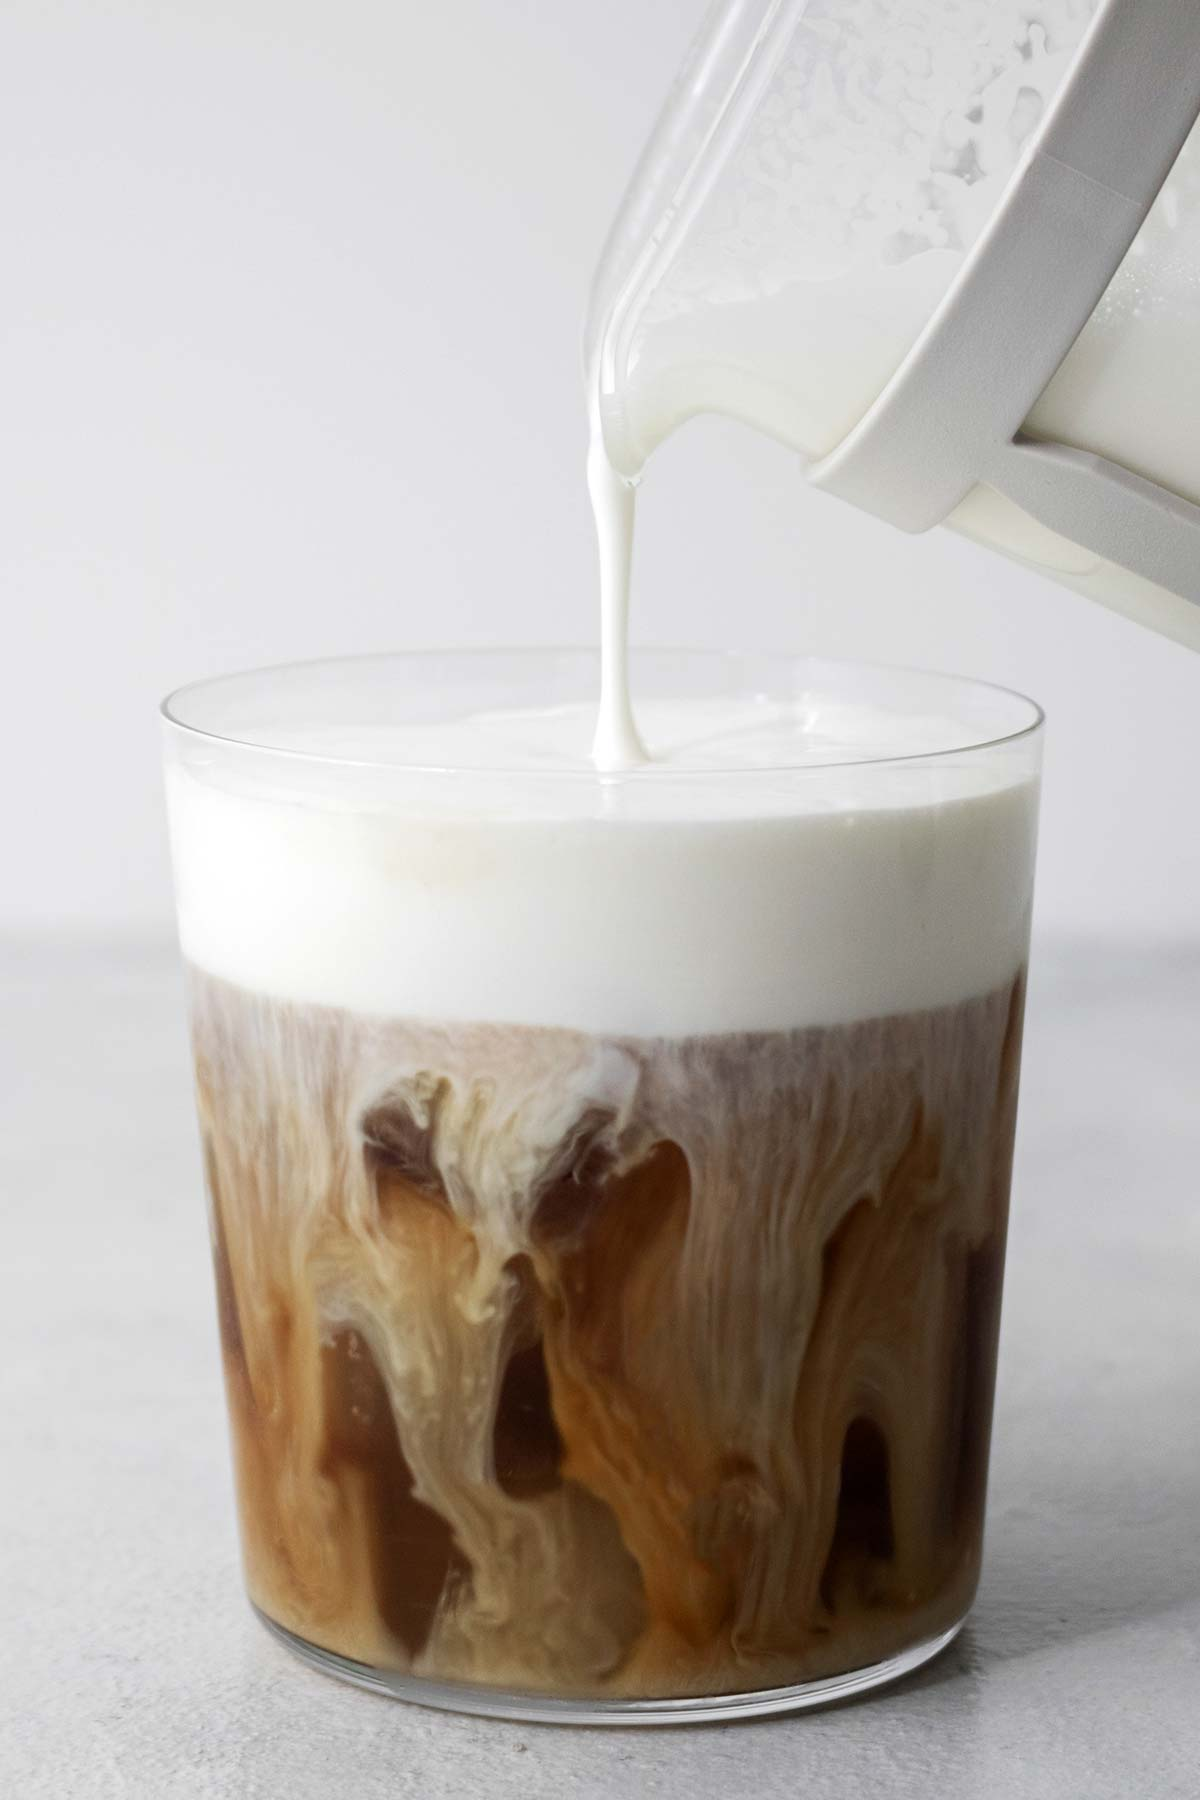 Pouring cold foam into a cup of iced coffee.